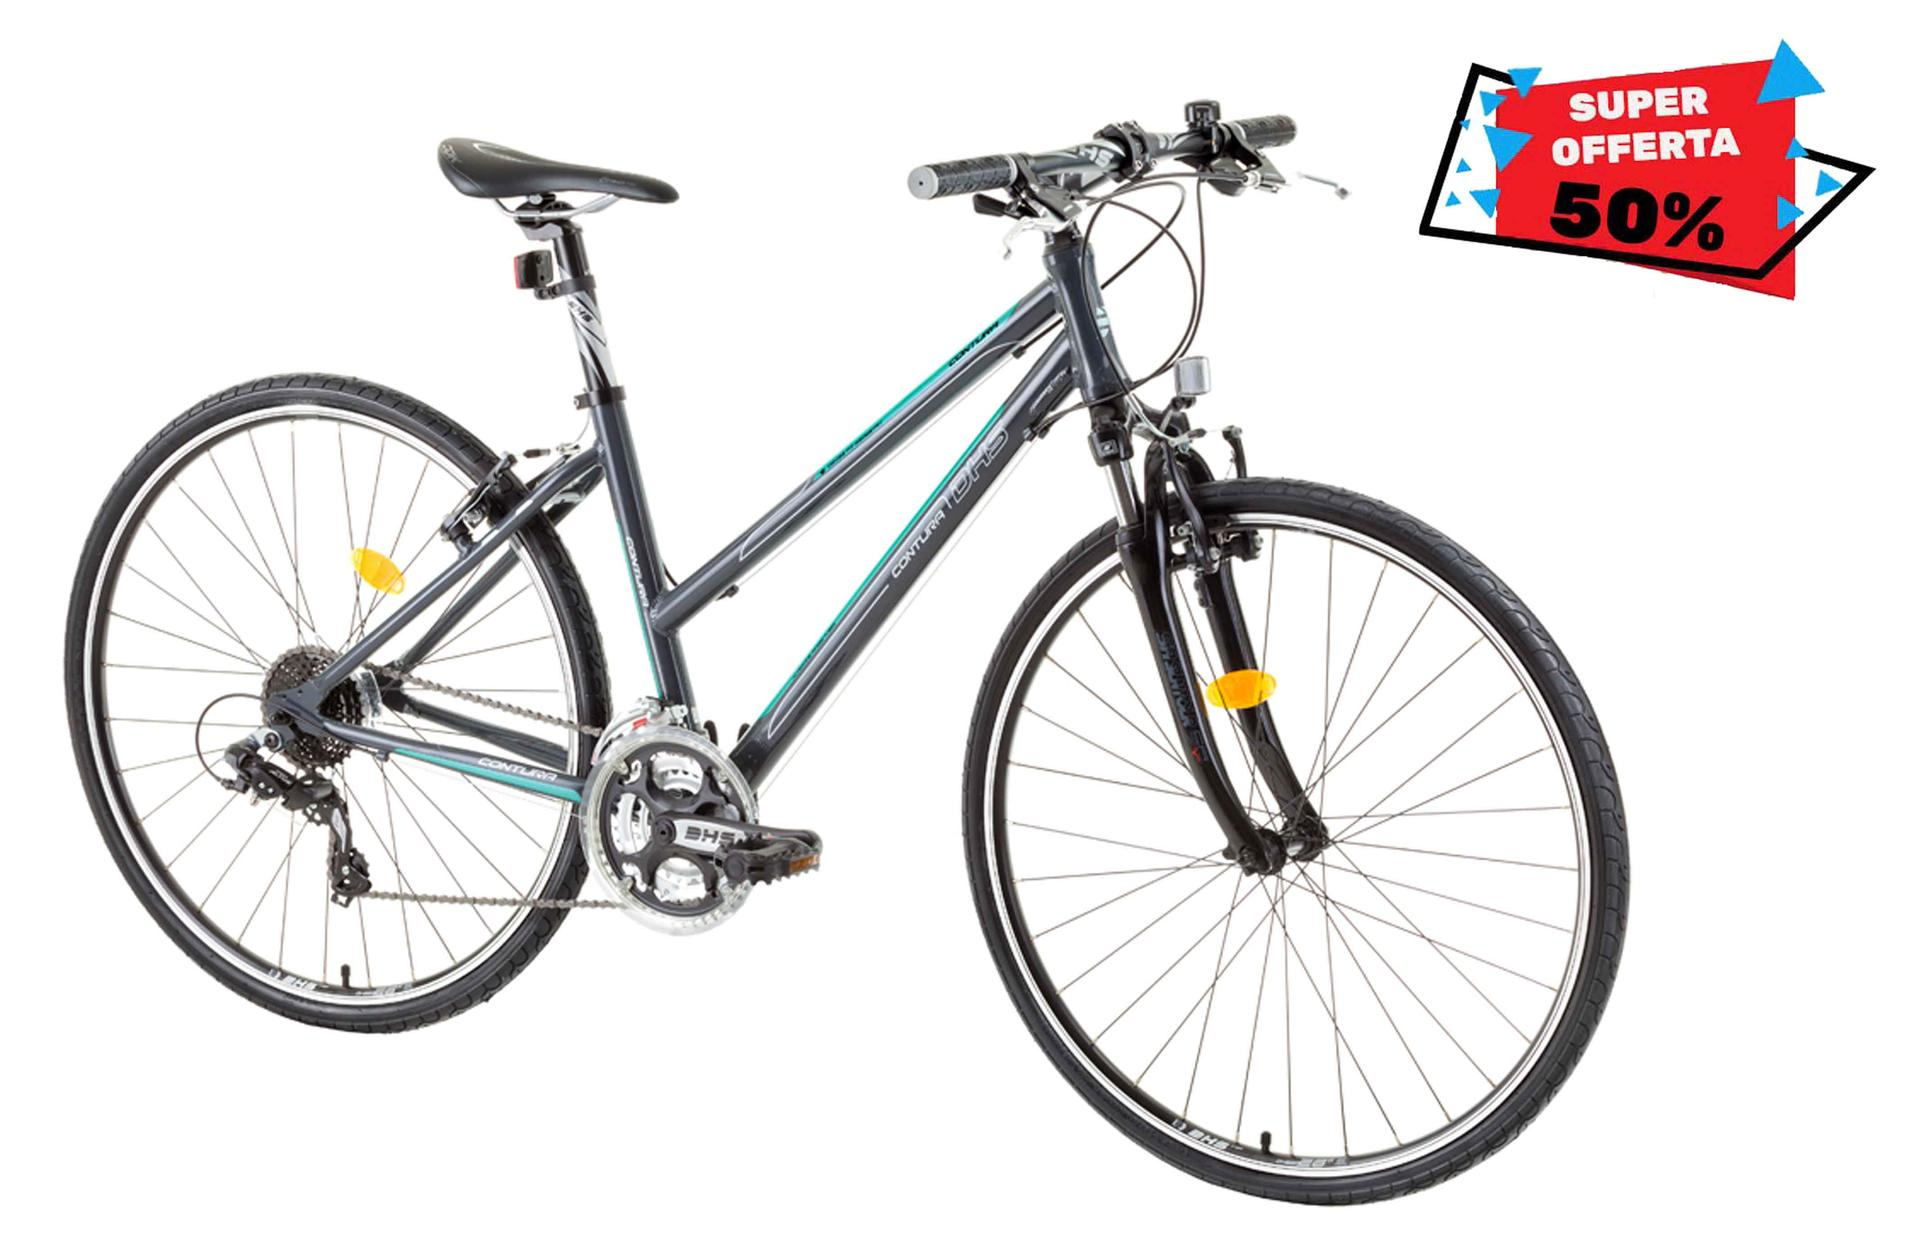 Bicicletta cross da donna DHS 2866 Grey-Green 495mm